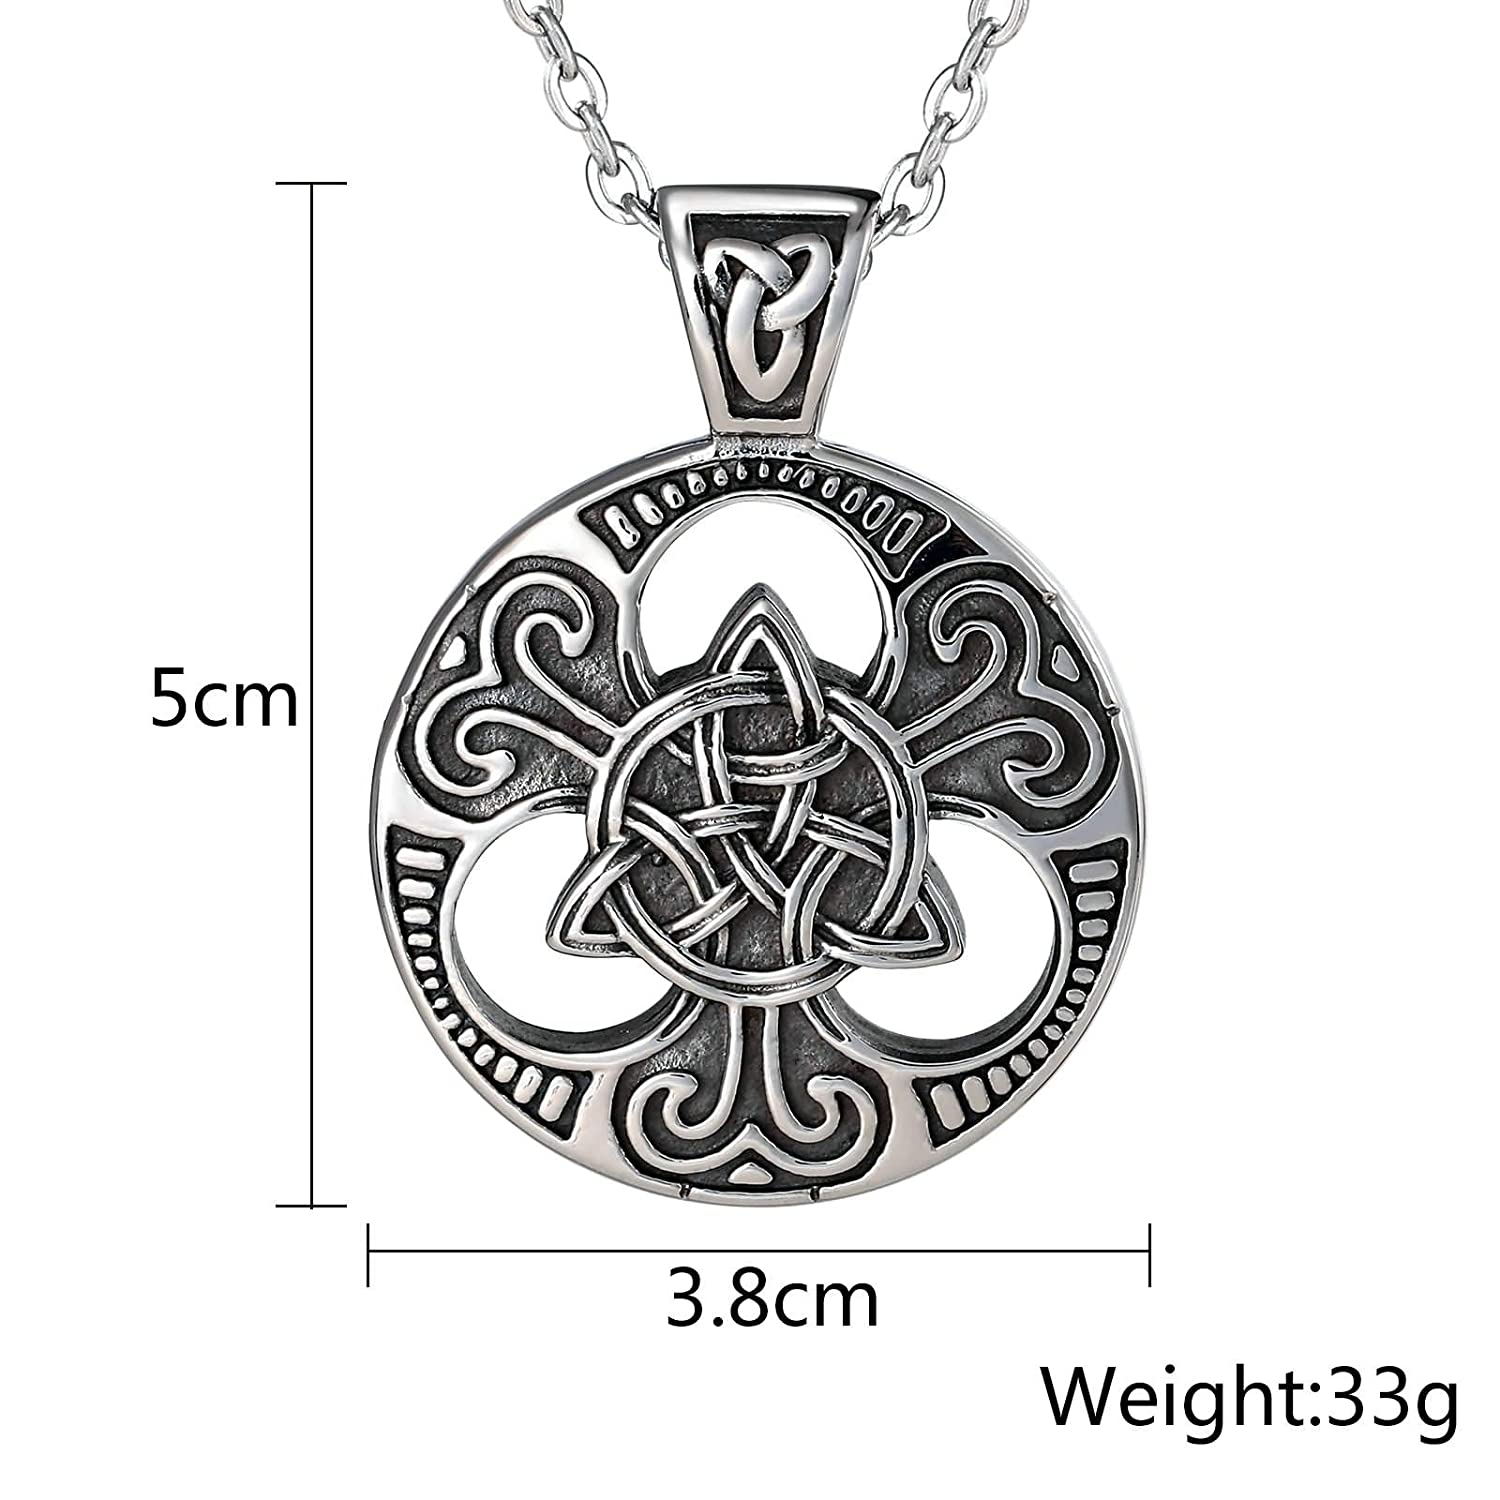 Bishilin Stainless Steel Pendant Necklace Hollow Woven Cross Flower Shaped Silver Necklace Personalized